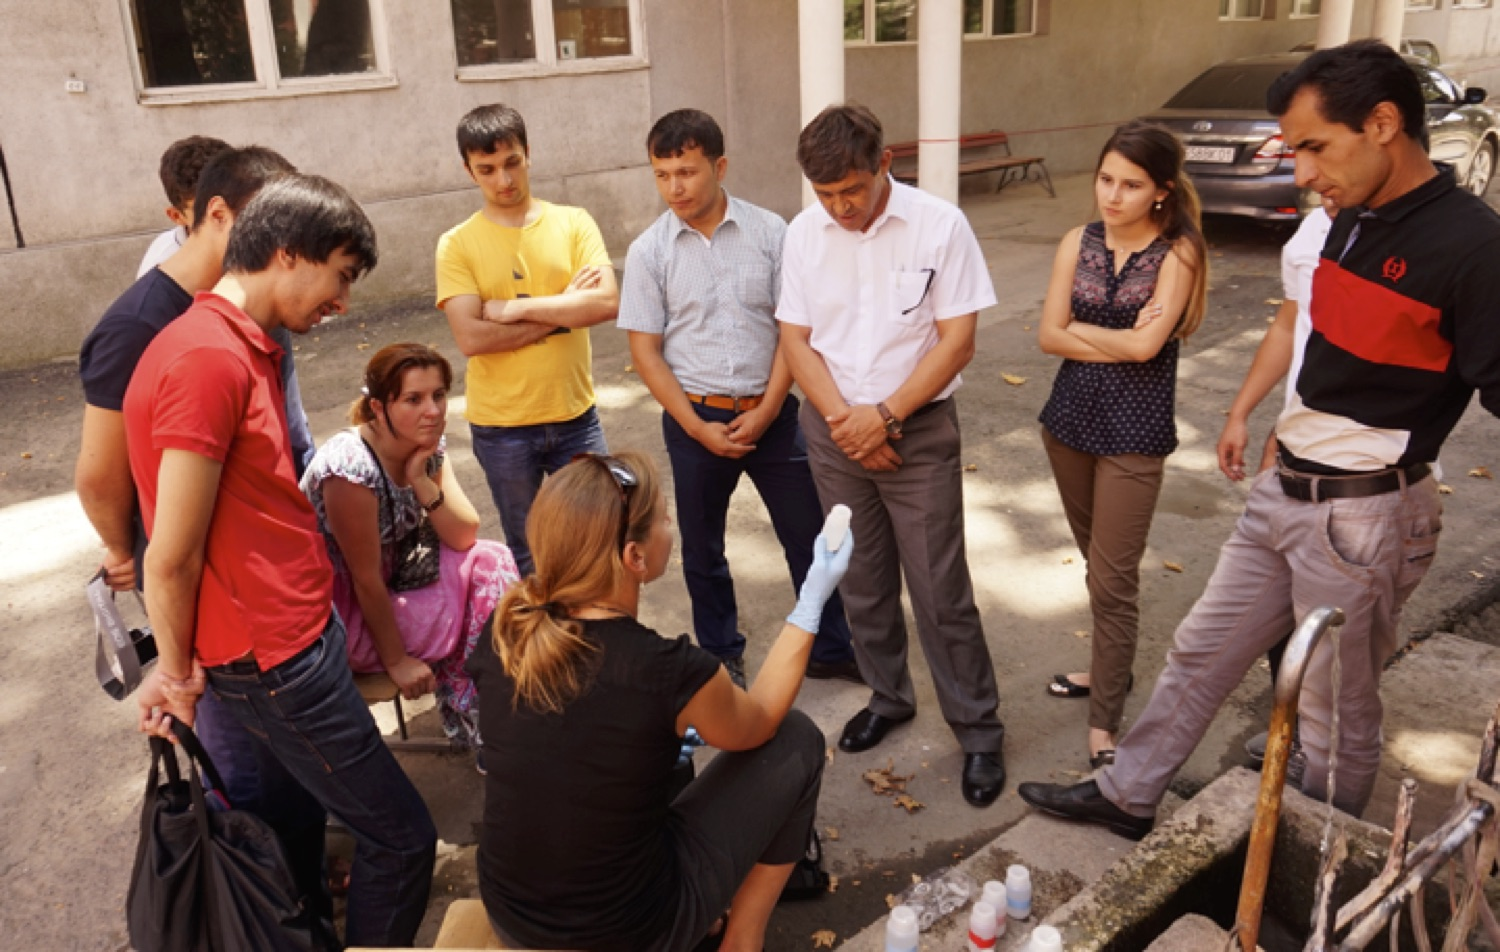 Alice Hill demonstrates field water sampling protocols with Inom Normatov's research group at Tajik National University in Dushanbe, Tajikistan.